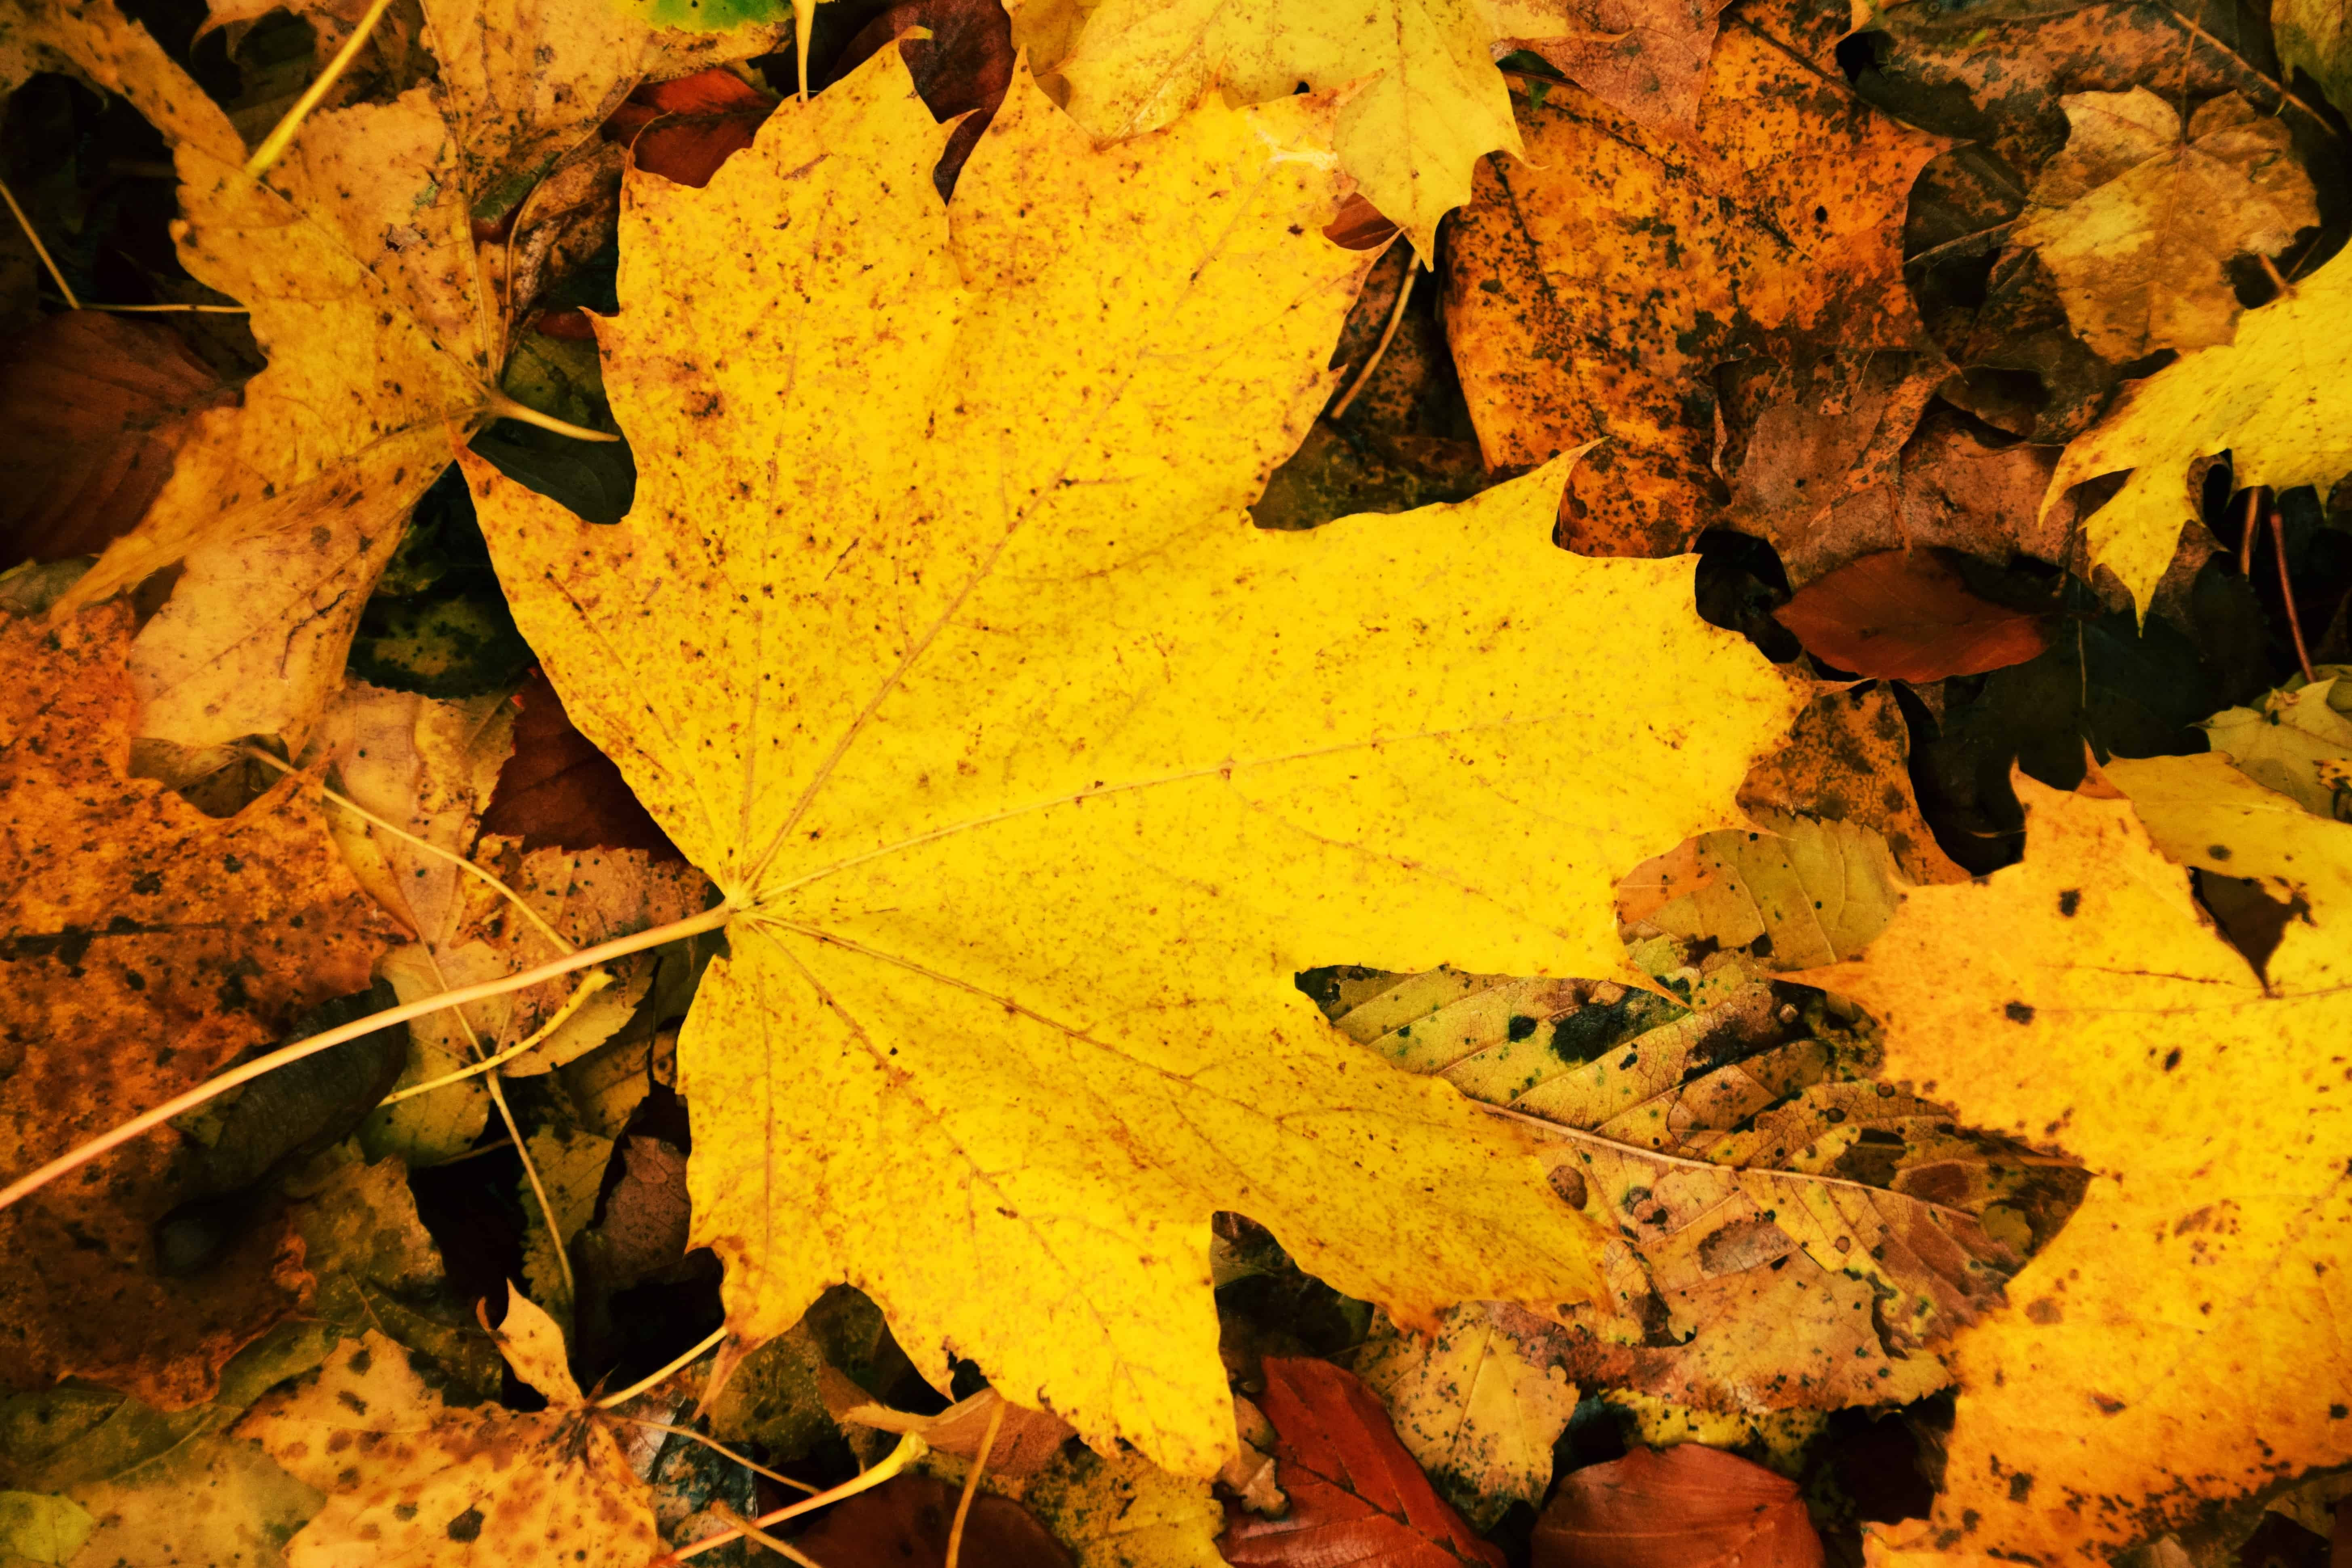 Free picture: wood, flora, ground, yellow leaf, nature, autumn, foliage